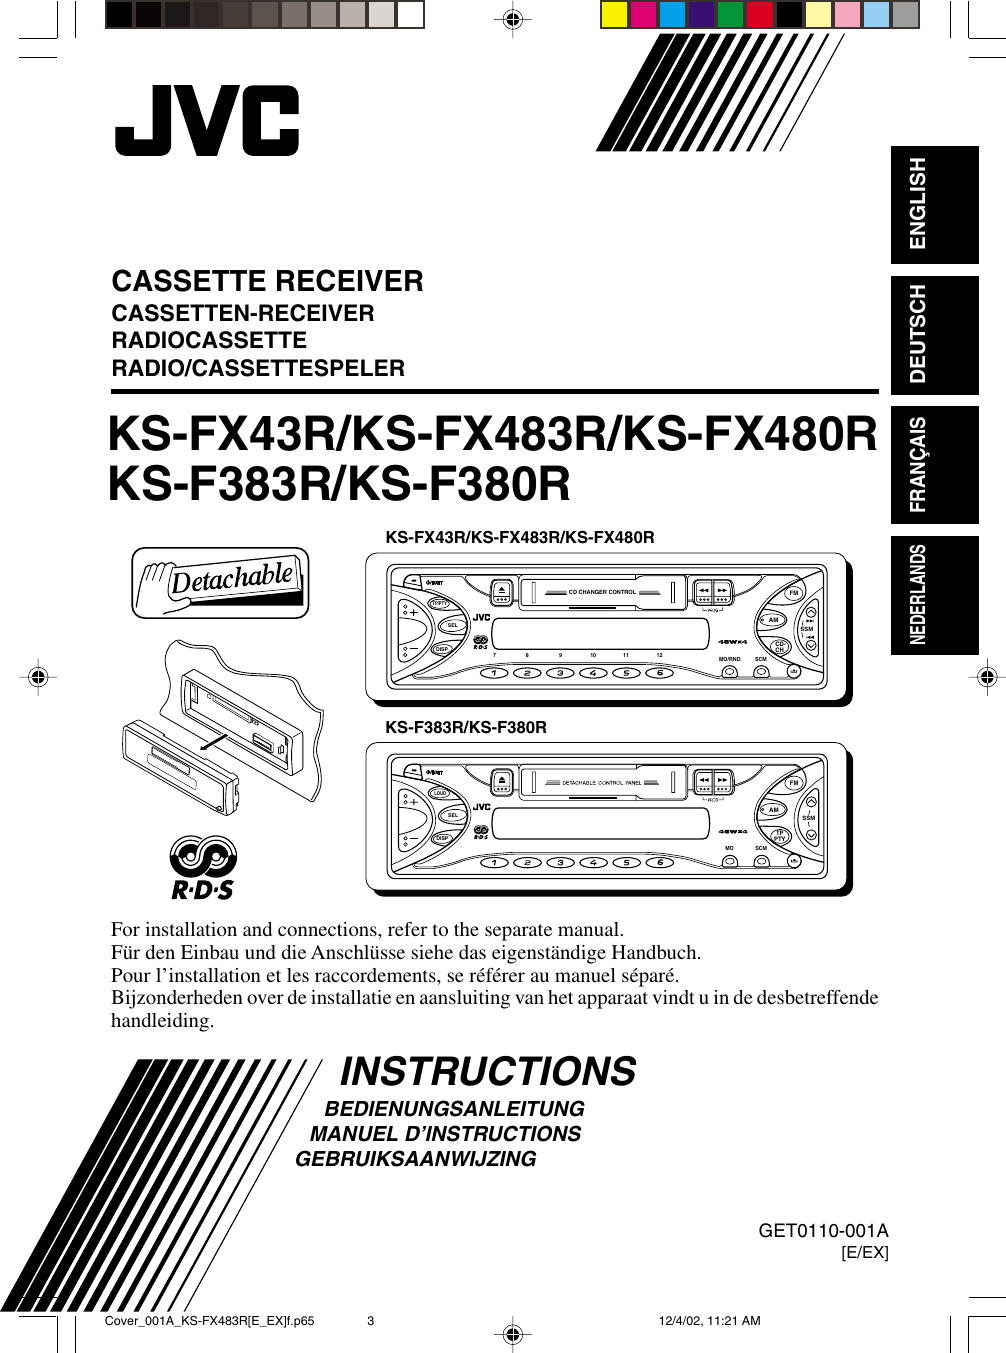 Jvc Ks F383R Users Manual FX43R_001